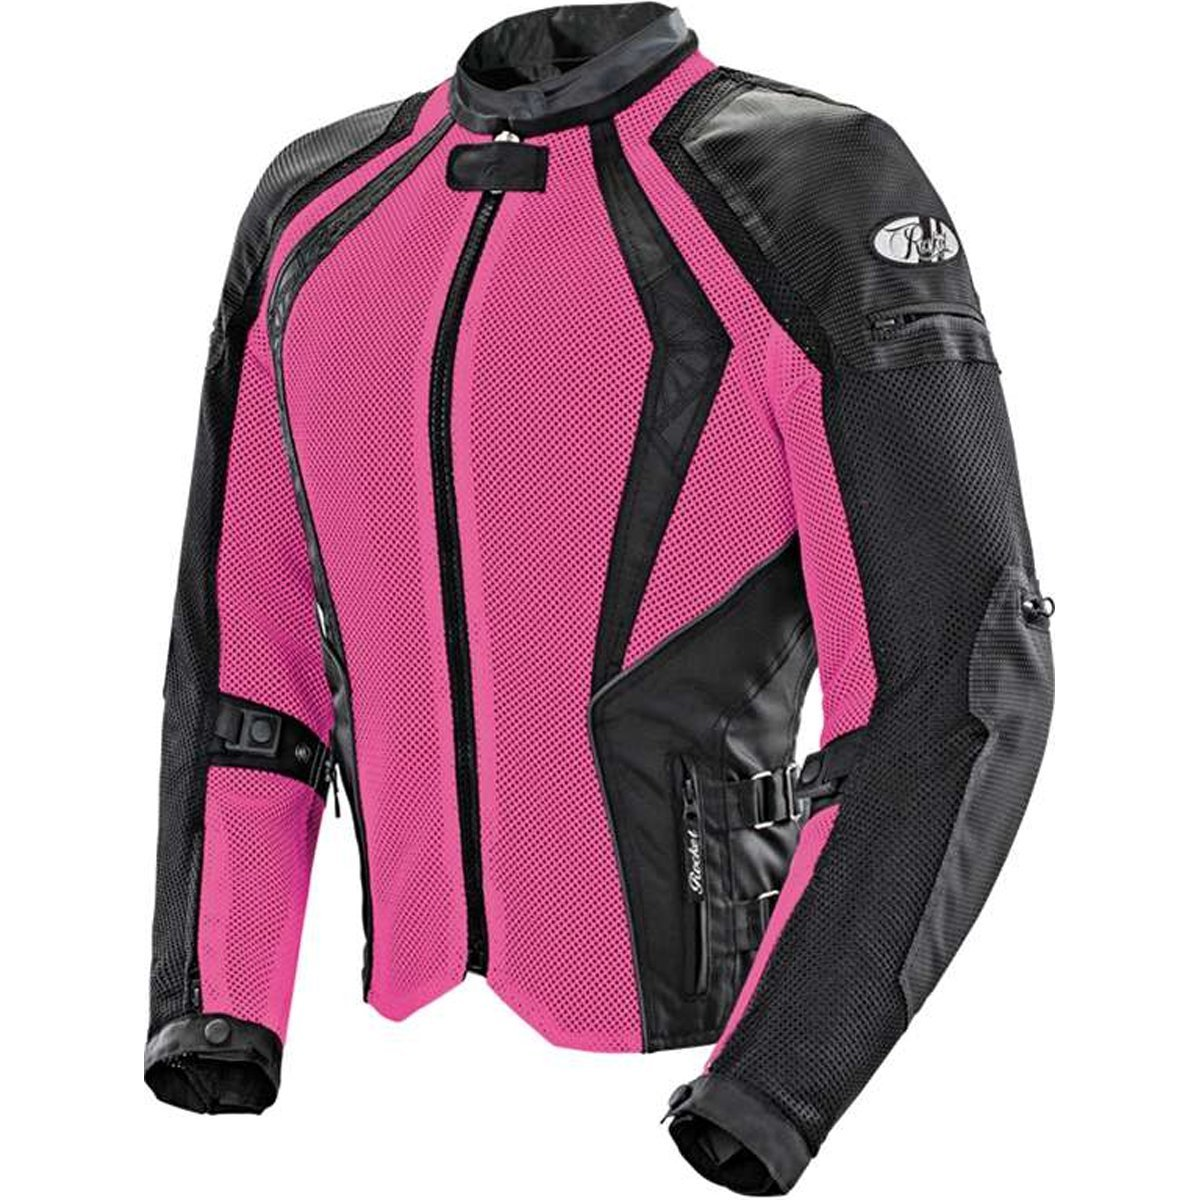 Joe Rocket Cleo Elite Womens Mesh Street Motorcycle Jacket Pink//Small 1653-0502-SU